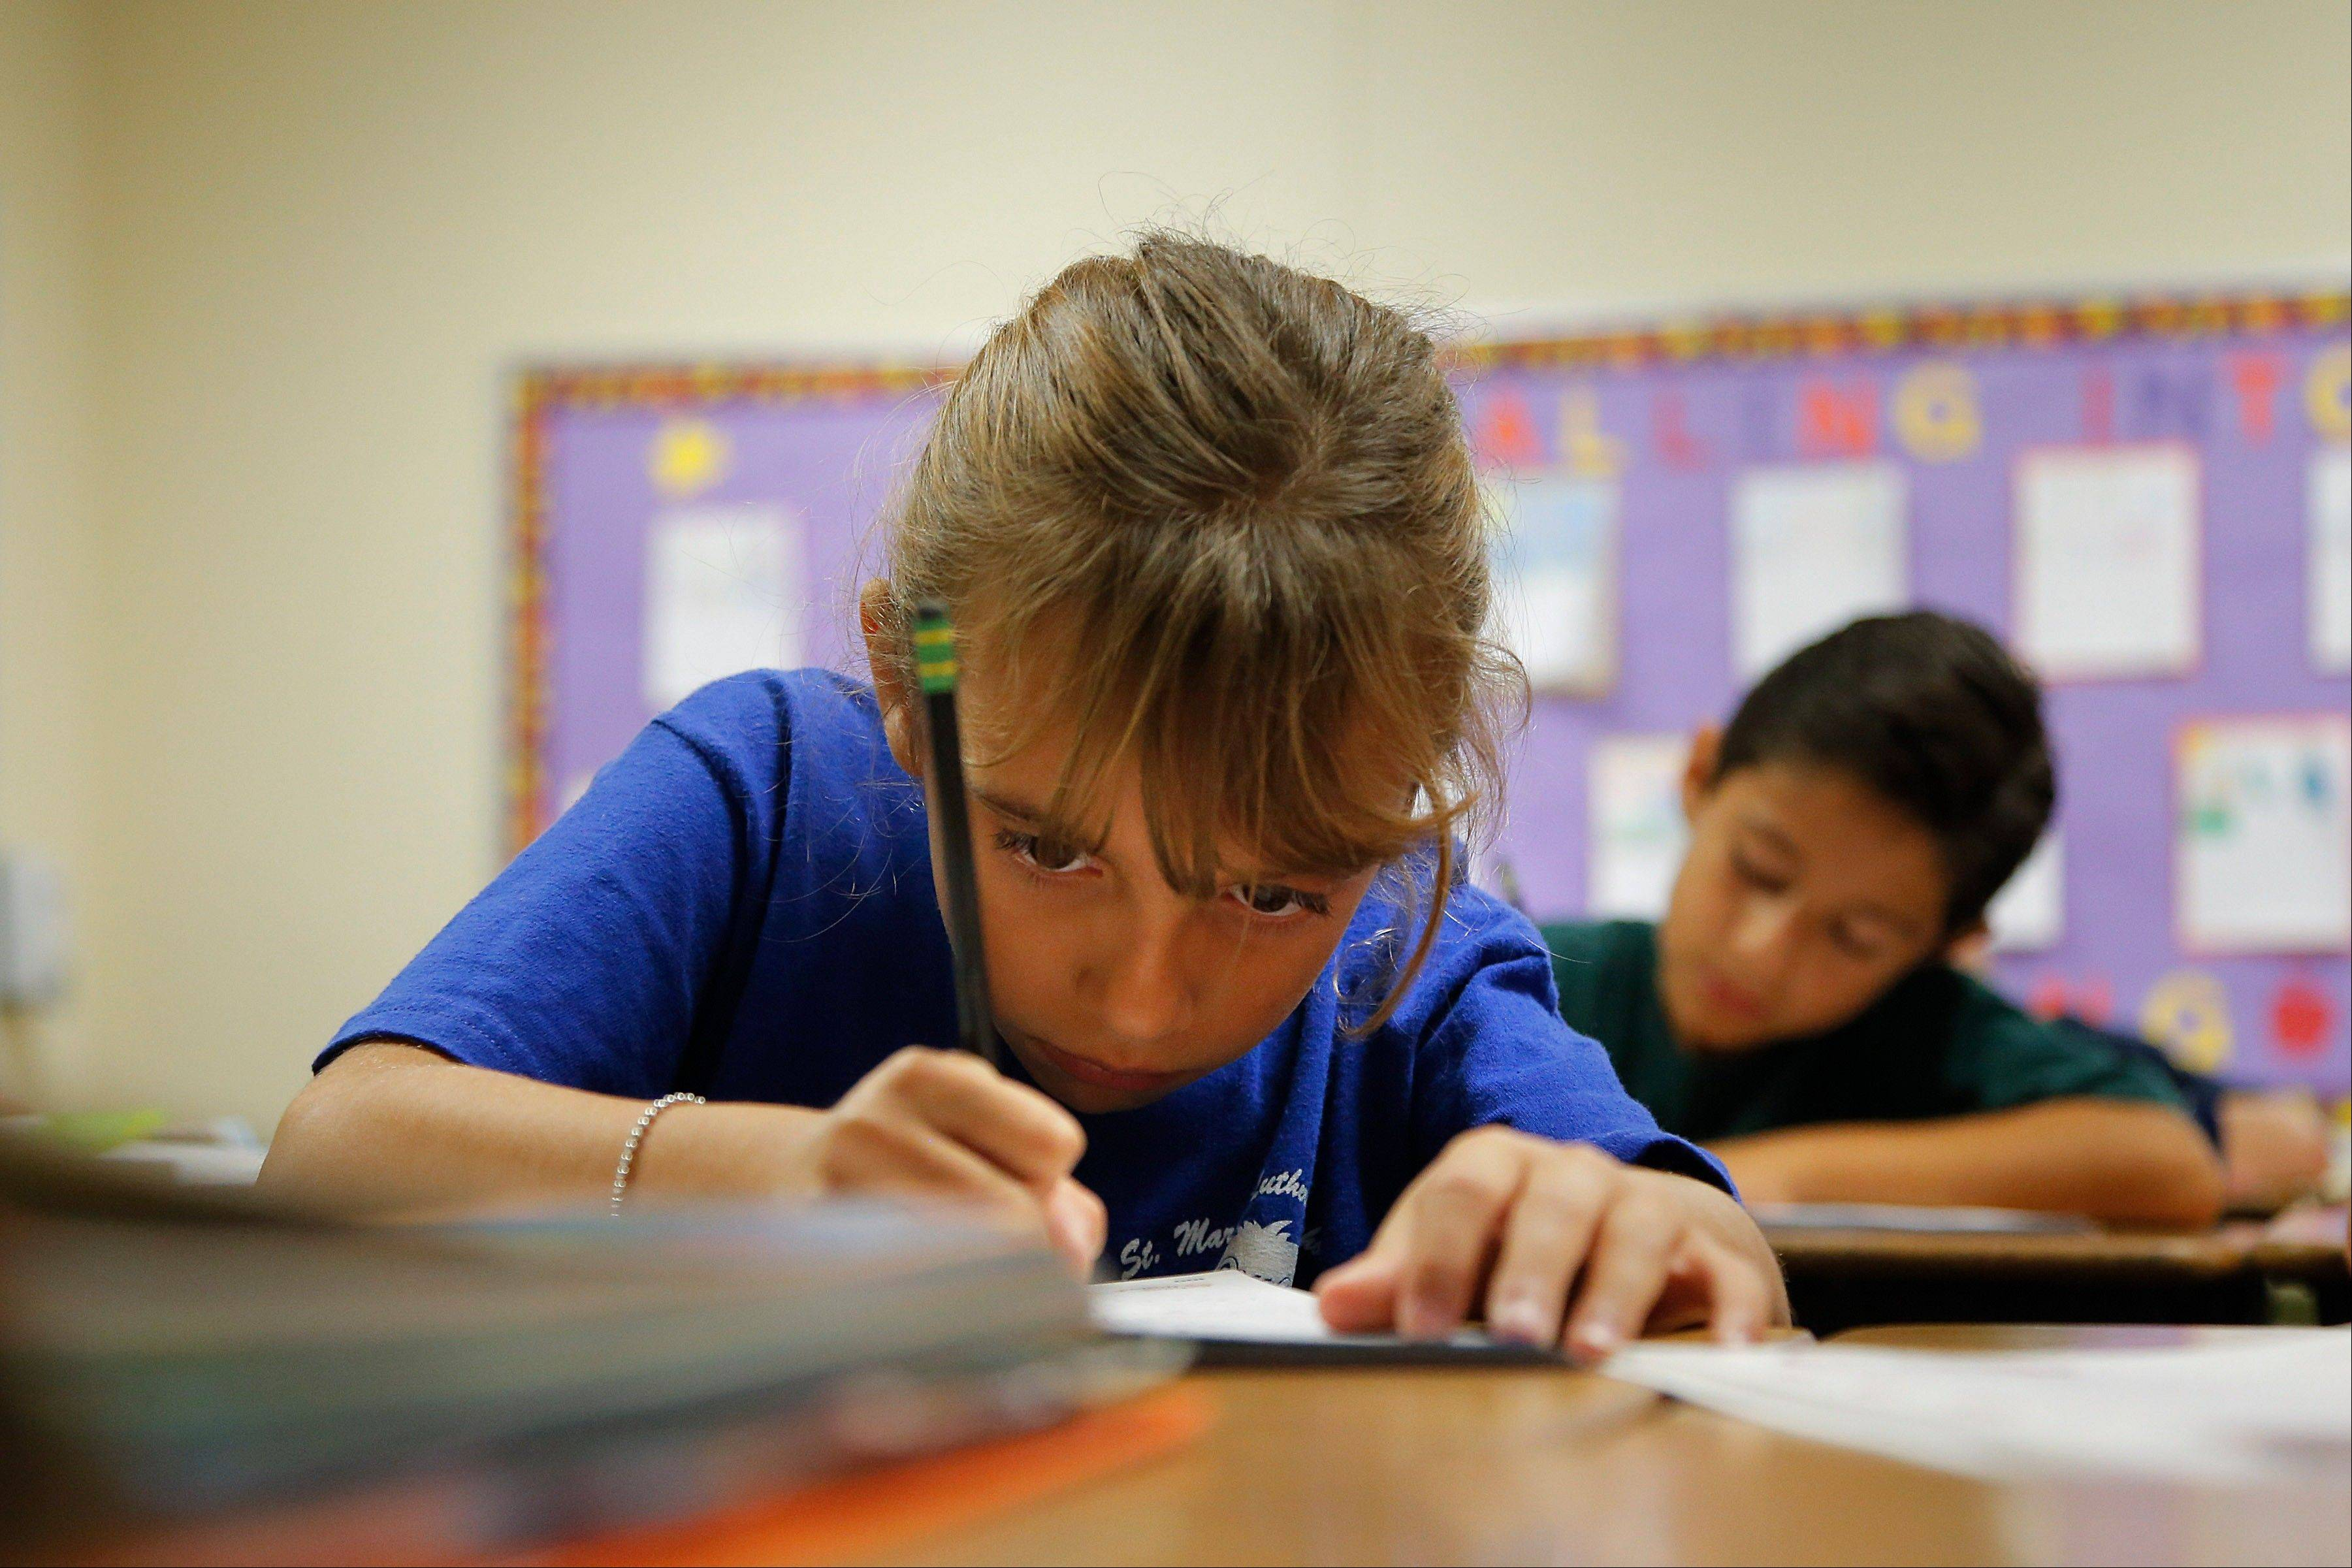 Alexia Herrera practices writing in cursive Thursday at St. Mark�s Lutheran School in Hacienda Heights, Calif.